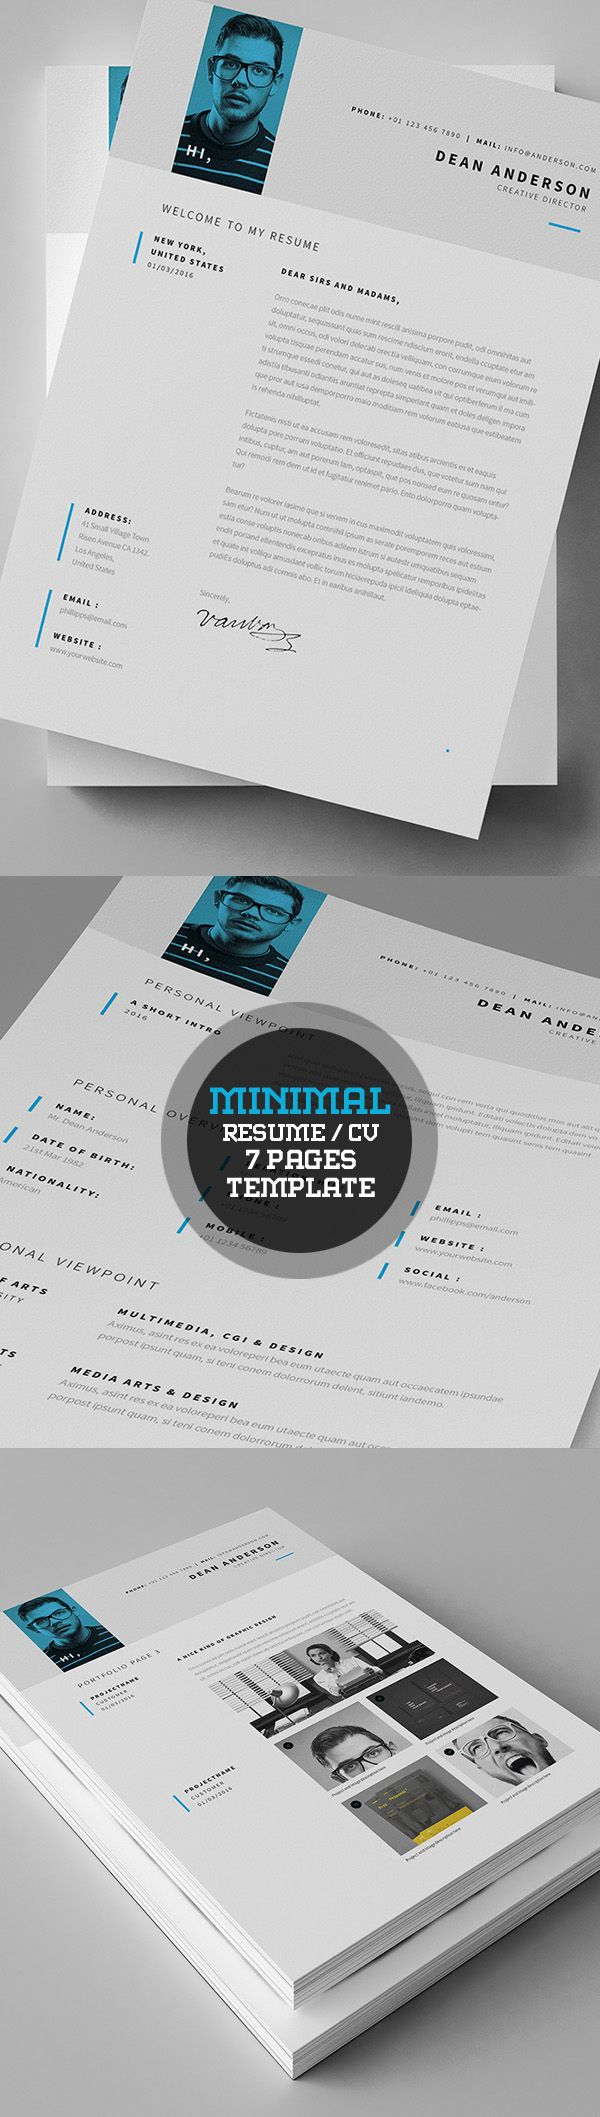 Cv Templates Design%0A The modern Resume  CV Templates are made in Adobe Photoshop and Illustrator  and converted into